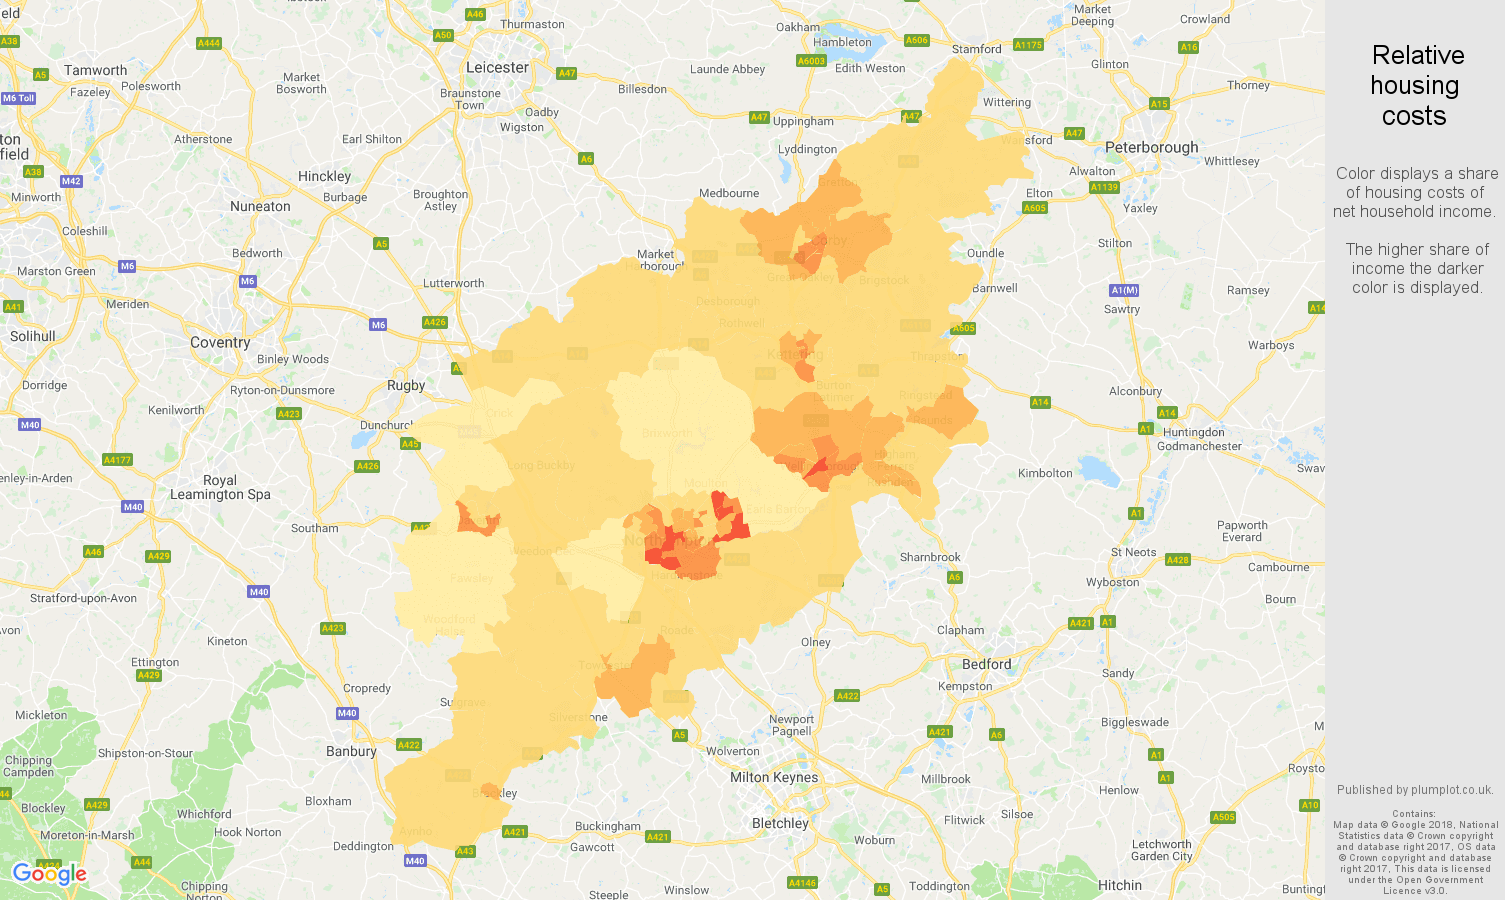 Northampton relative housing costs map